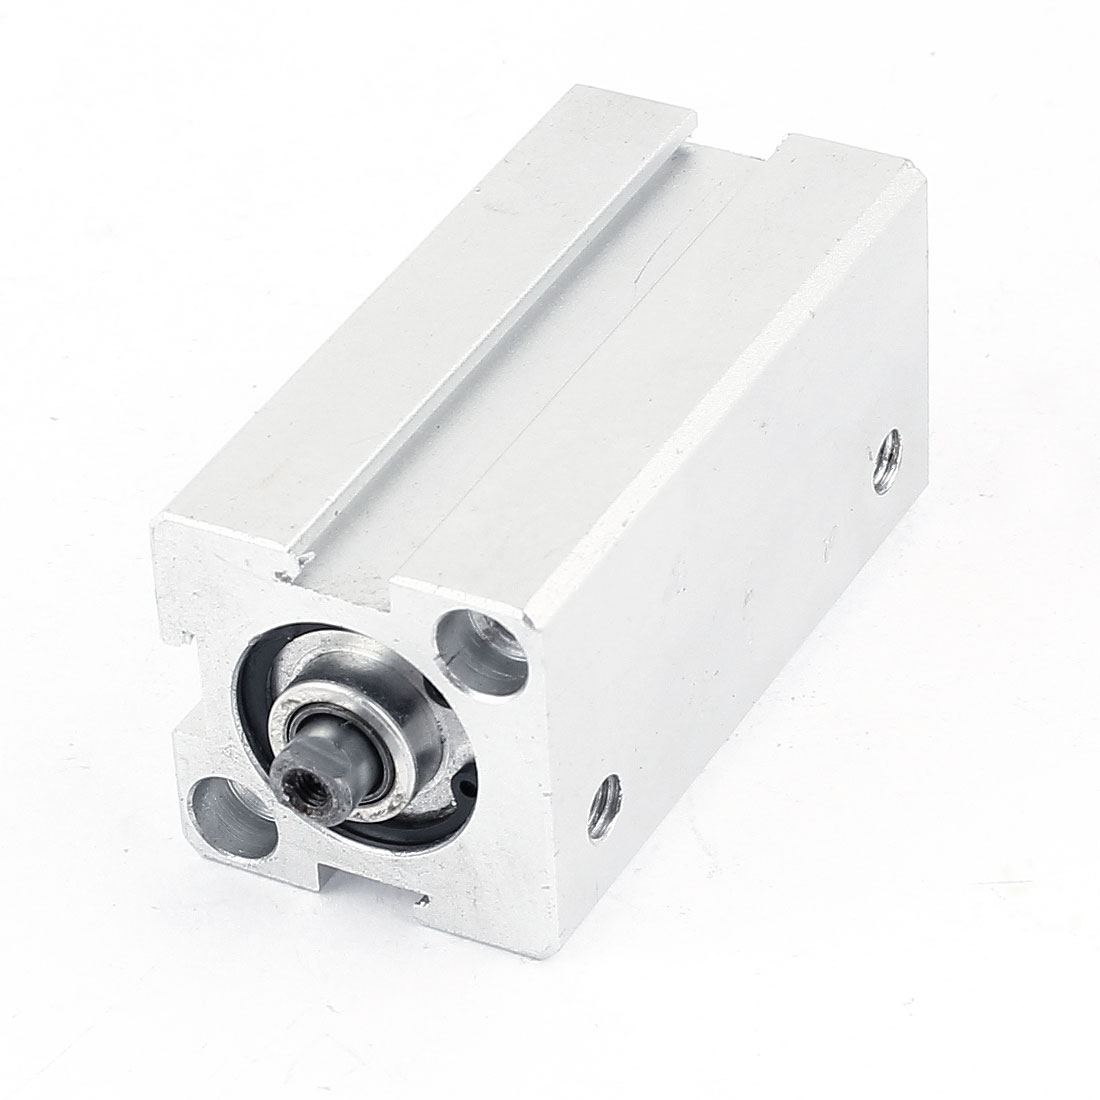 SDA16x40 16mm Bore 40mm Stroke Single Rod Aluminum Alloy Pneumatic Air Cylinder